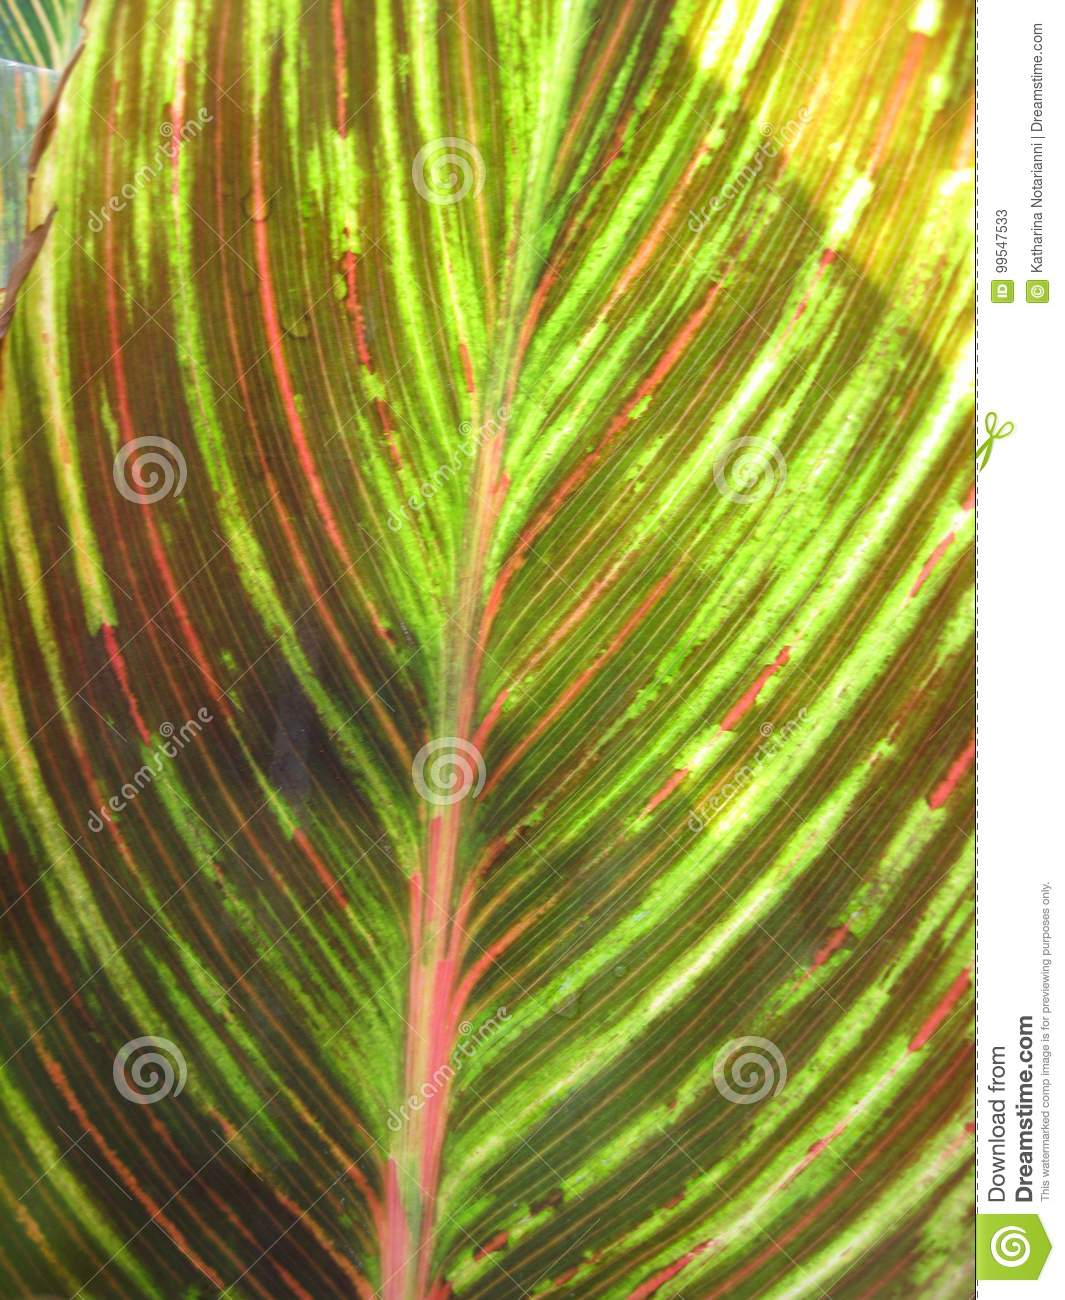 Canna foliage close up red and green striped leaf